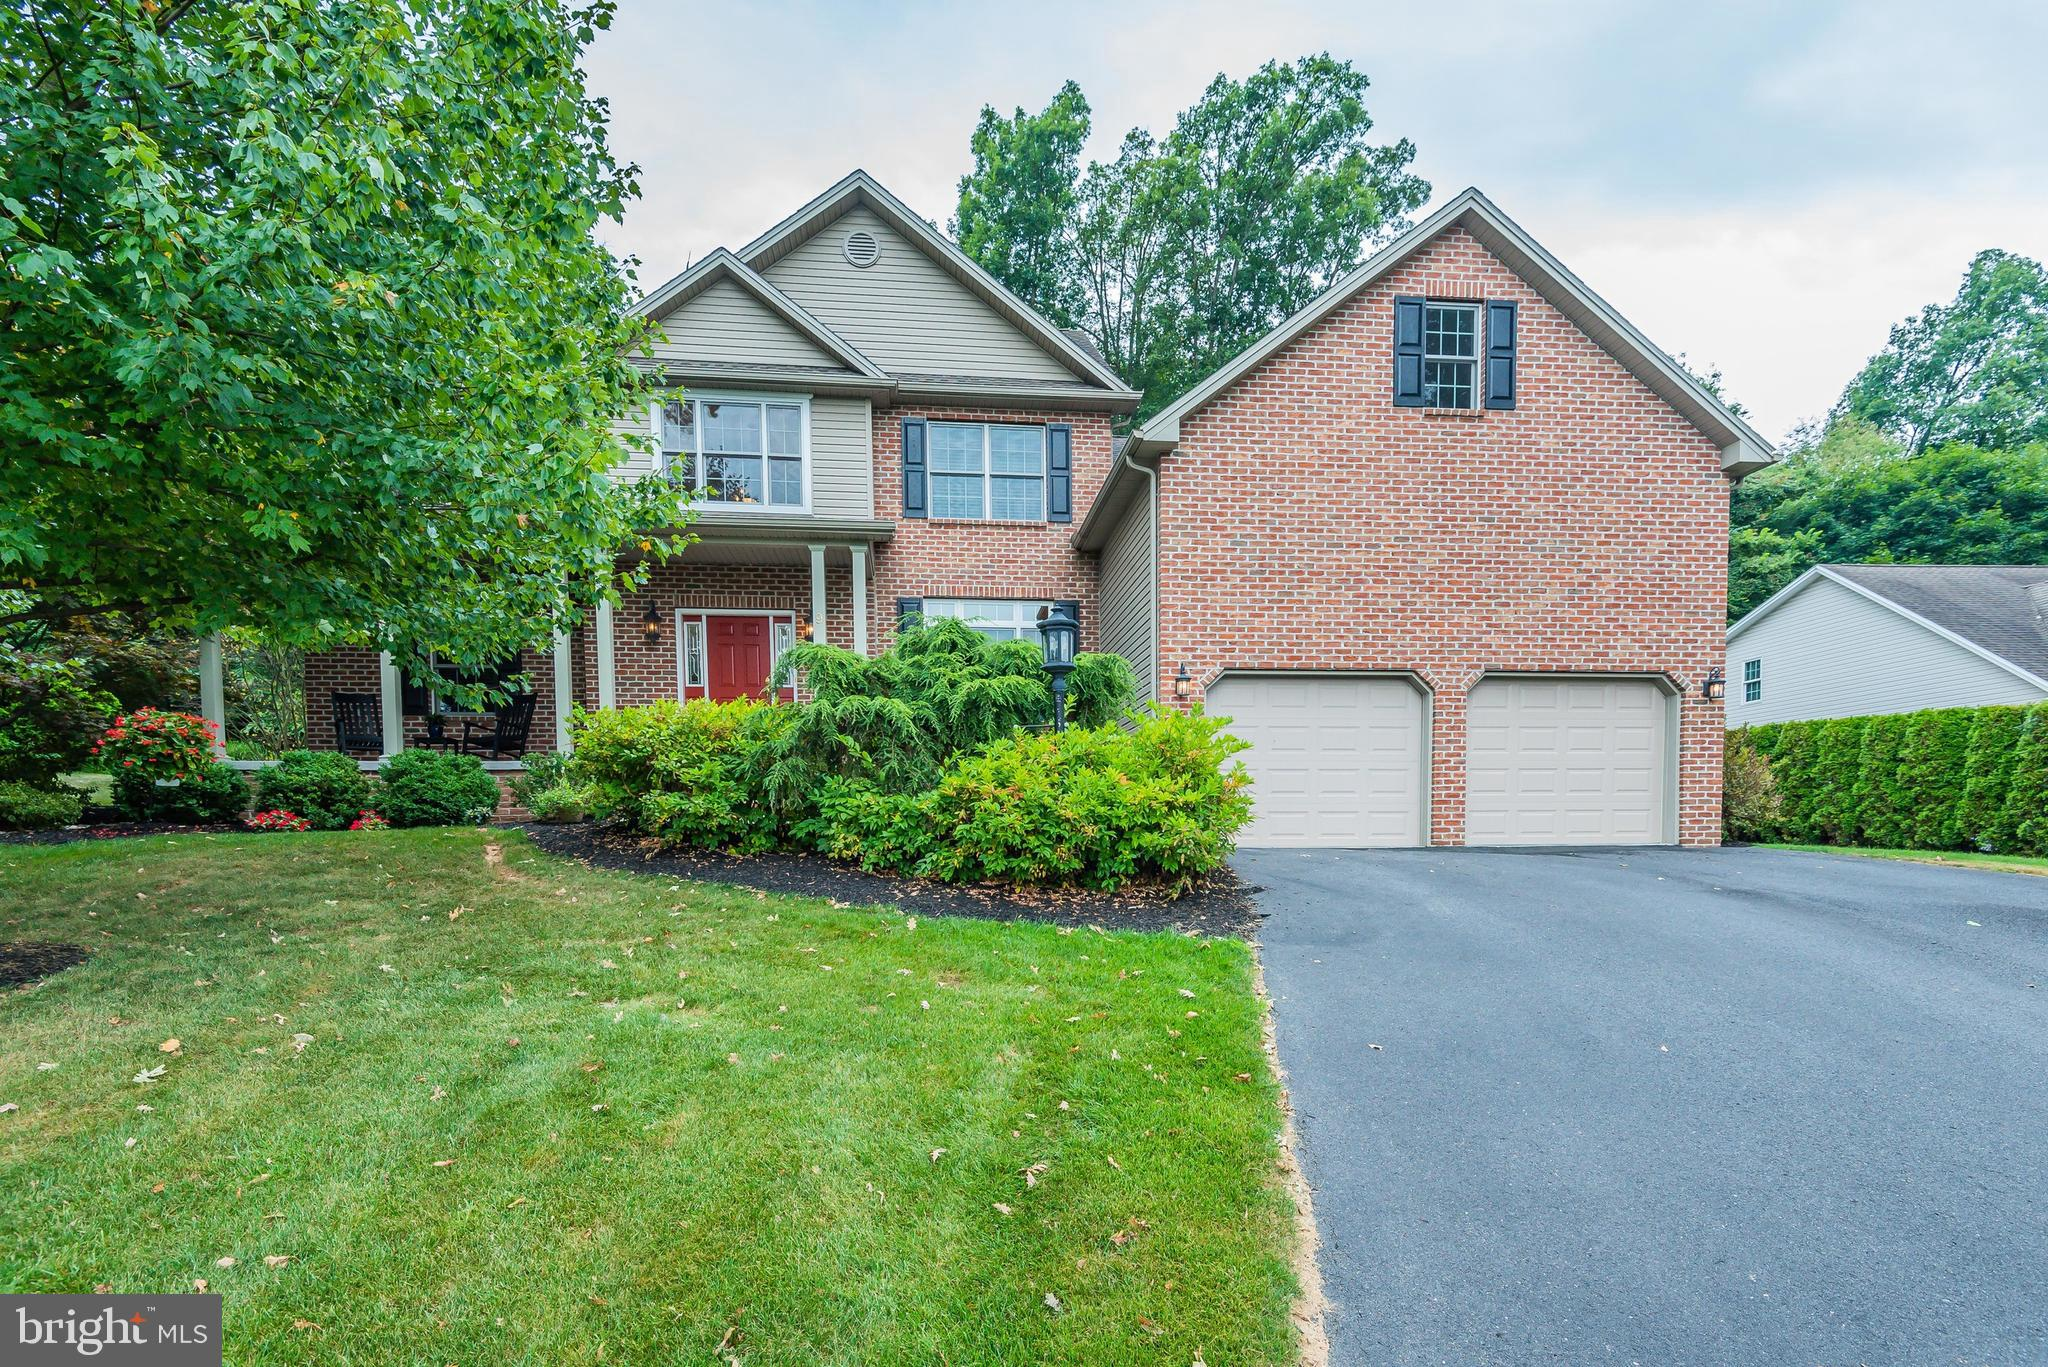 9 HICKORY COURT, BOILING SPRINGS, PA 17007